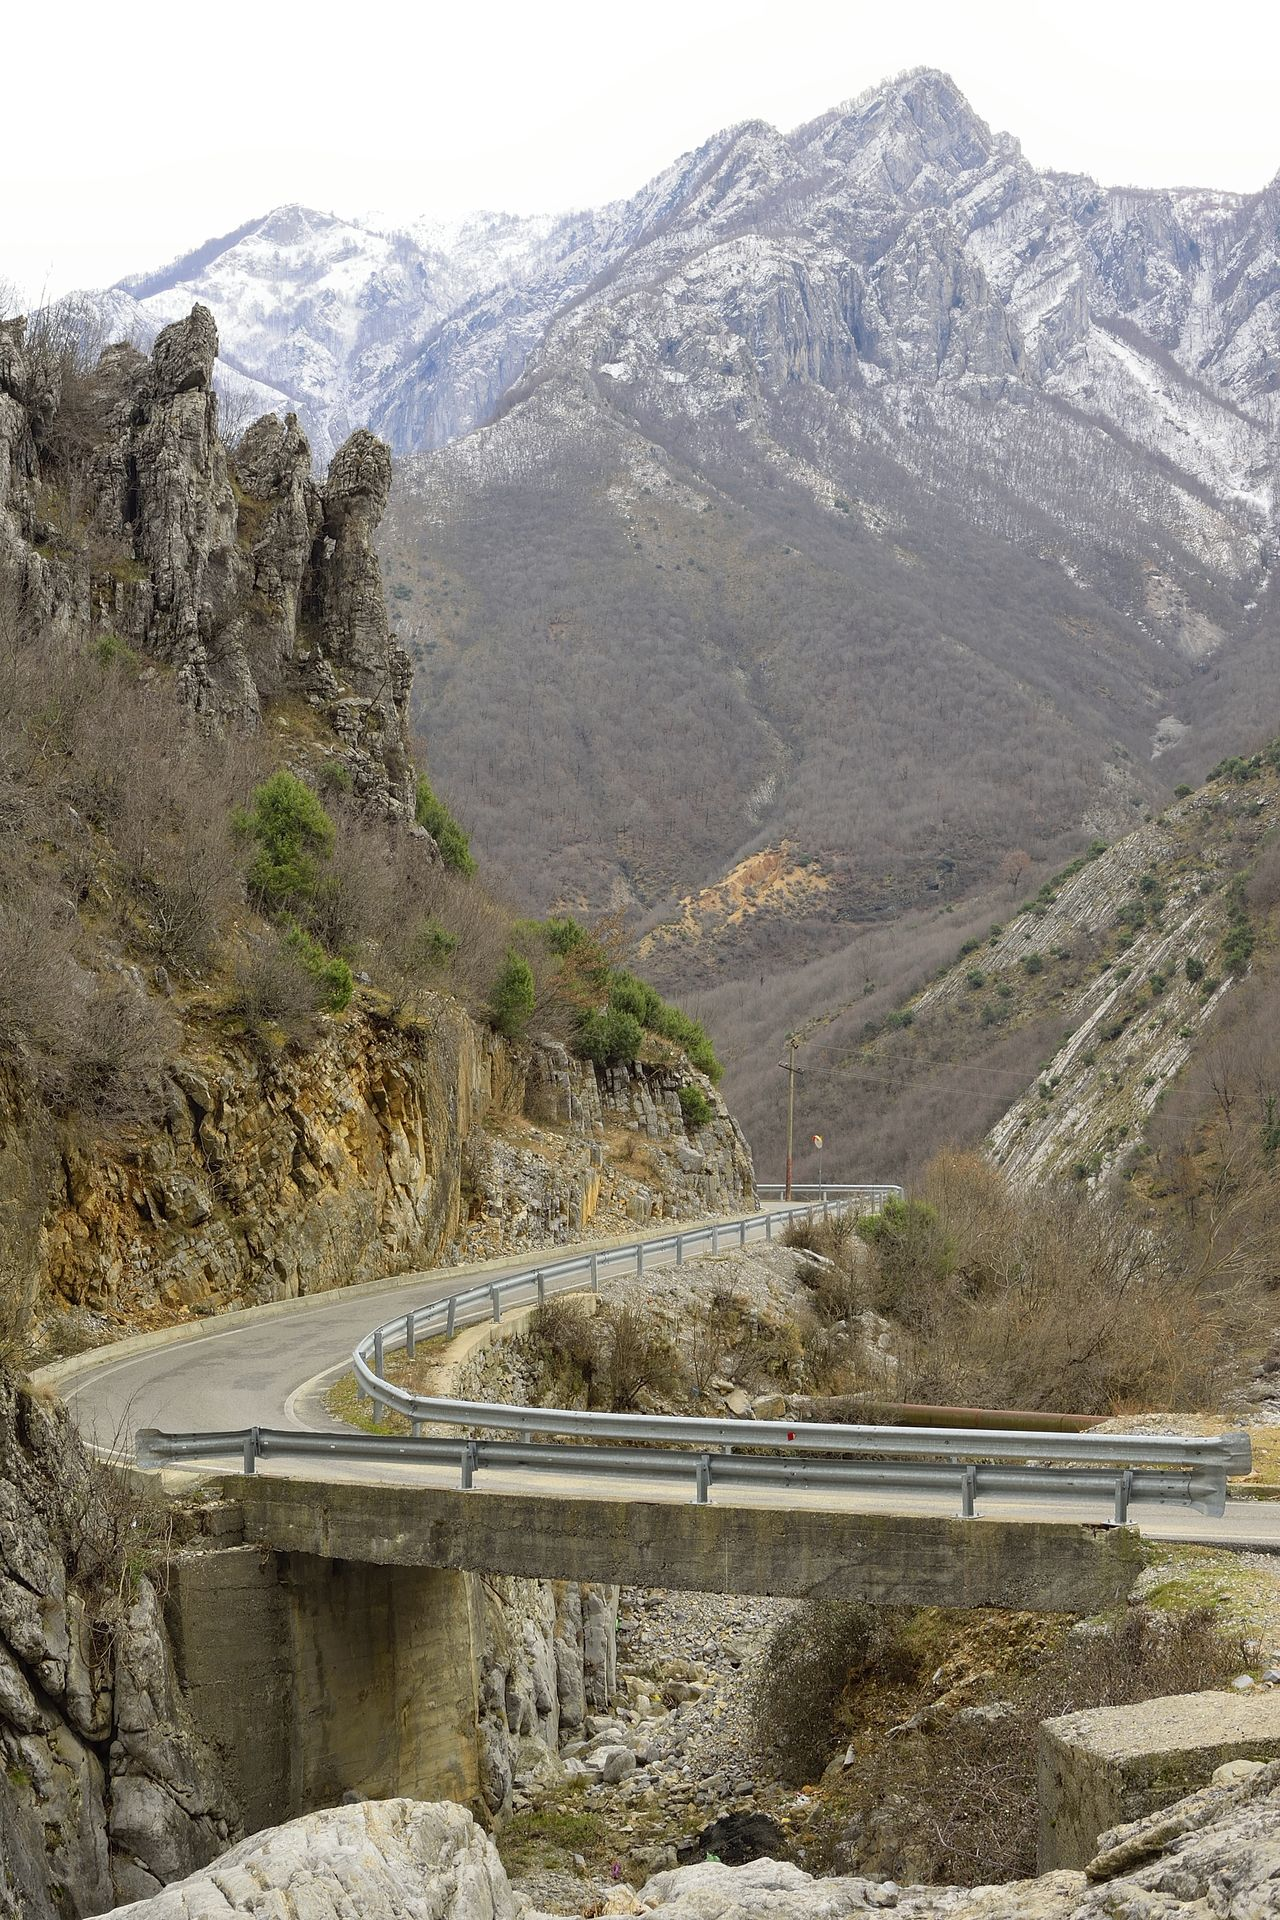 Albania Beauty In Nature Bridge Bridge - Man Made Structure Day High Landscape_Collection Mountain Mountains Nature Nature No People Outdoors Rock Formation Rocky Scenic Scenics Sky Transportation Travel Travling Valley View Winter